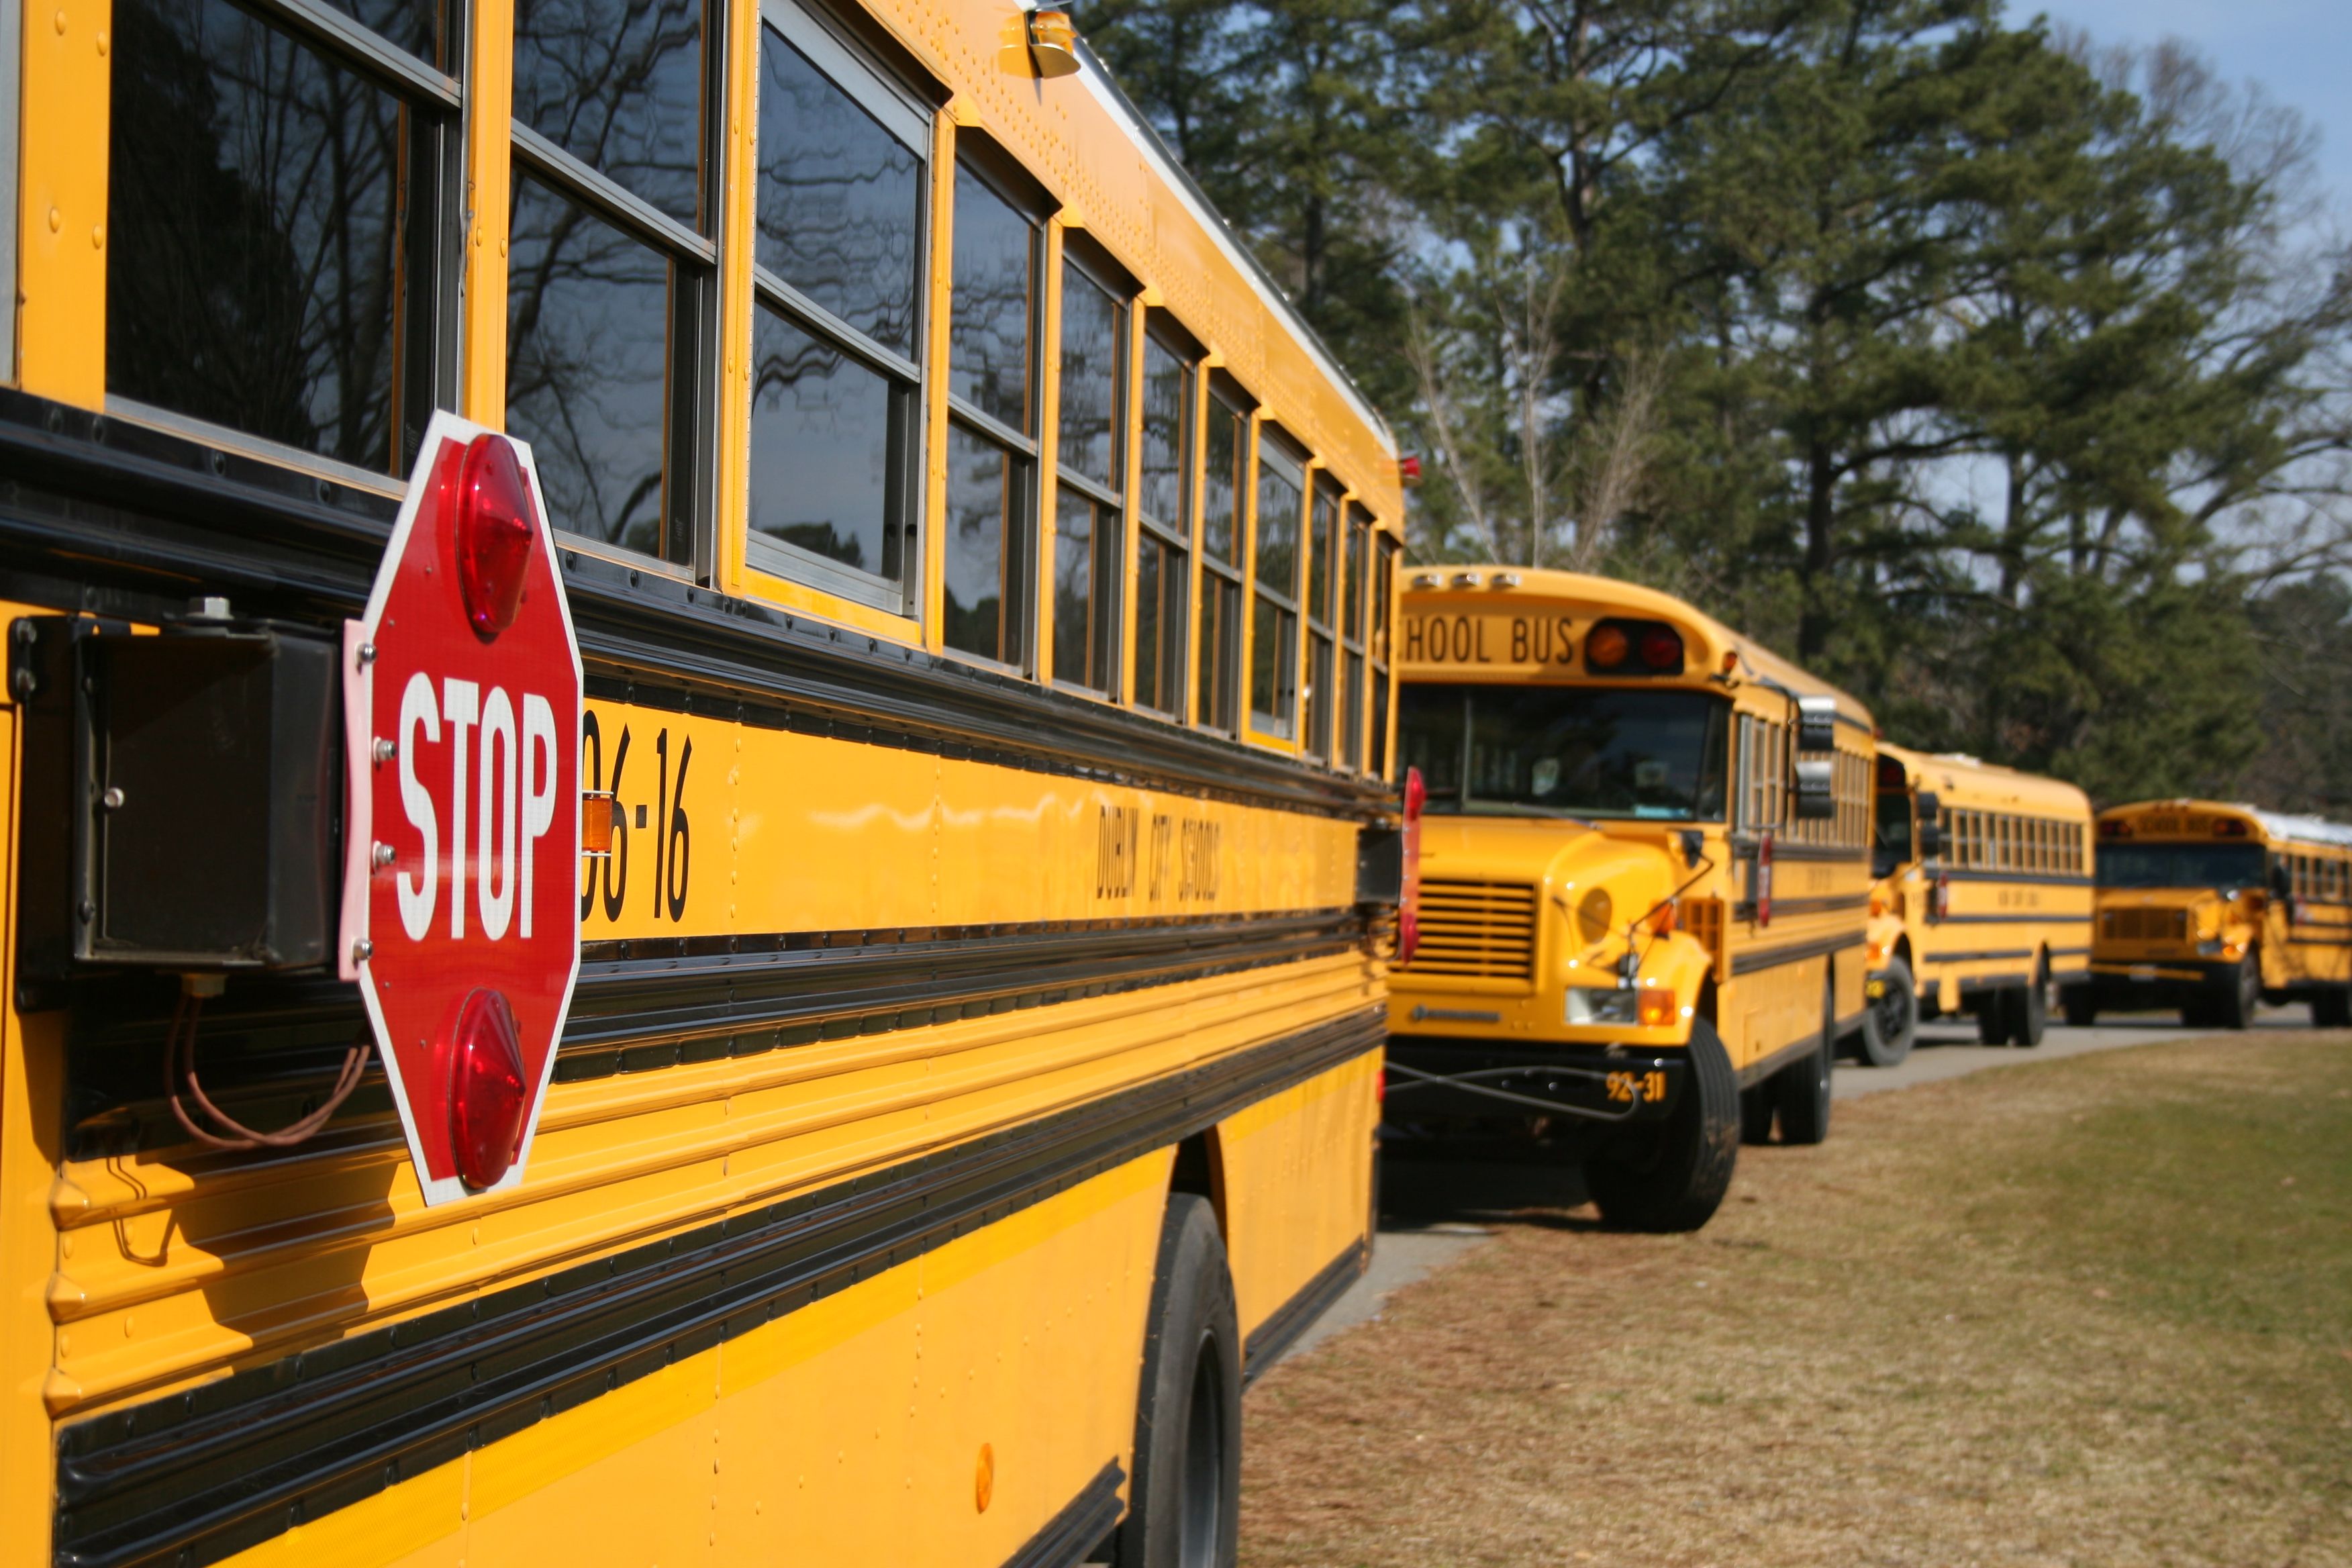 To protect students' lungs, school buses should not idle outside school buildings, University of Georgia experts say.